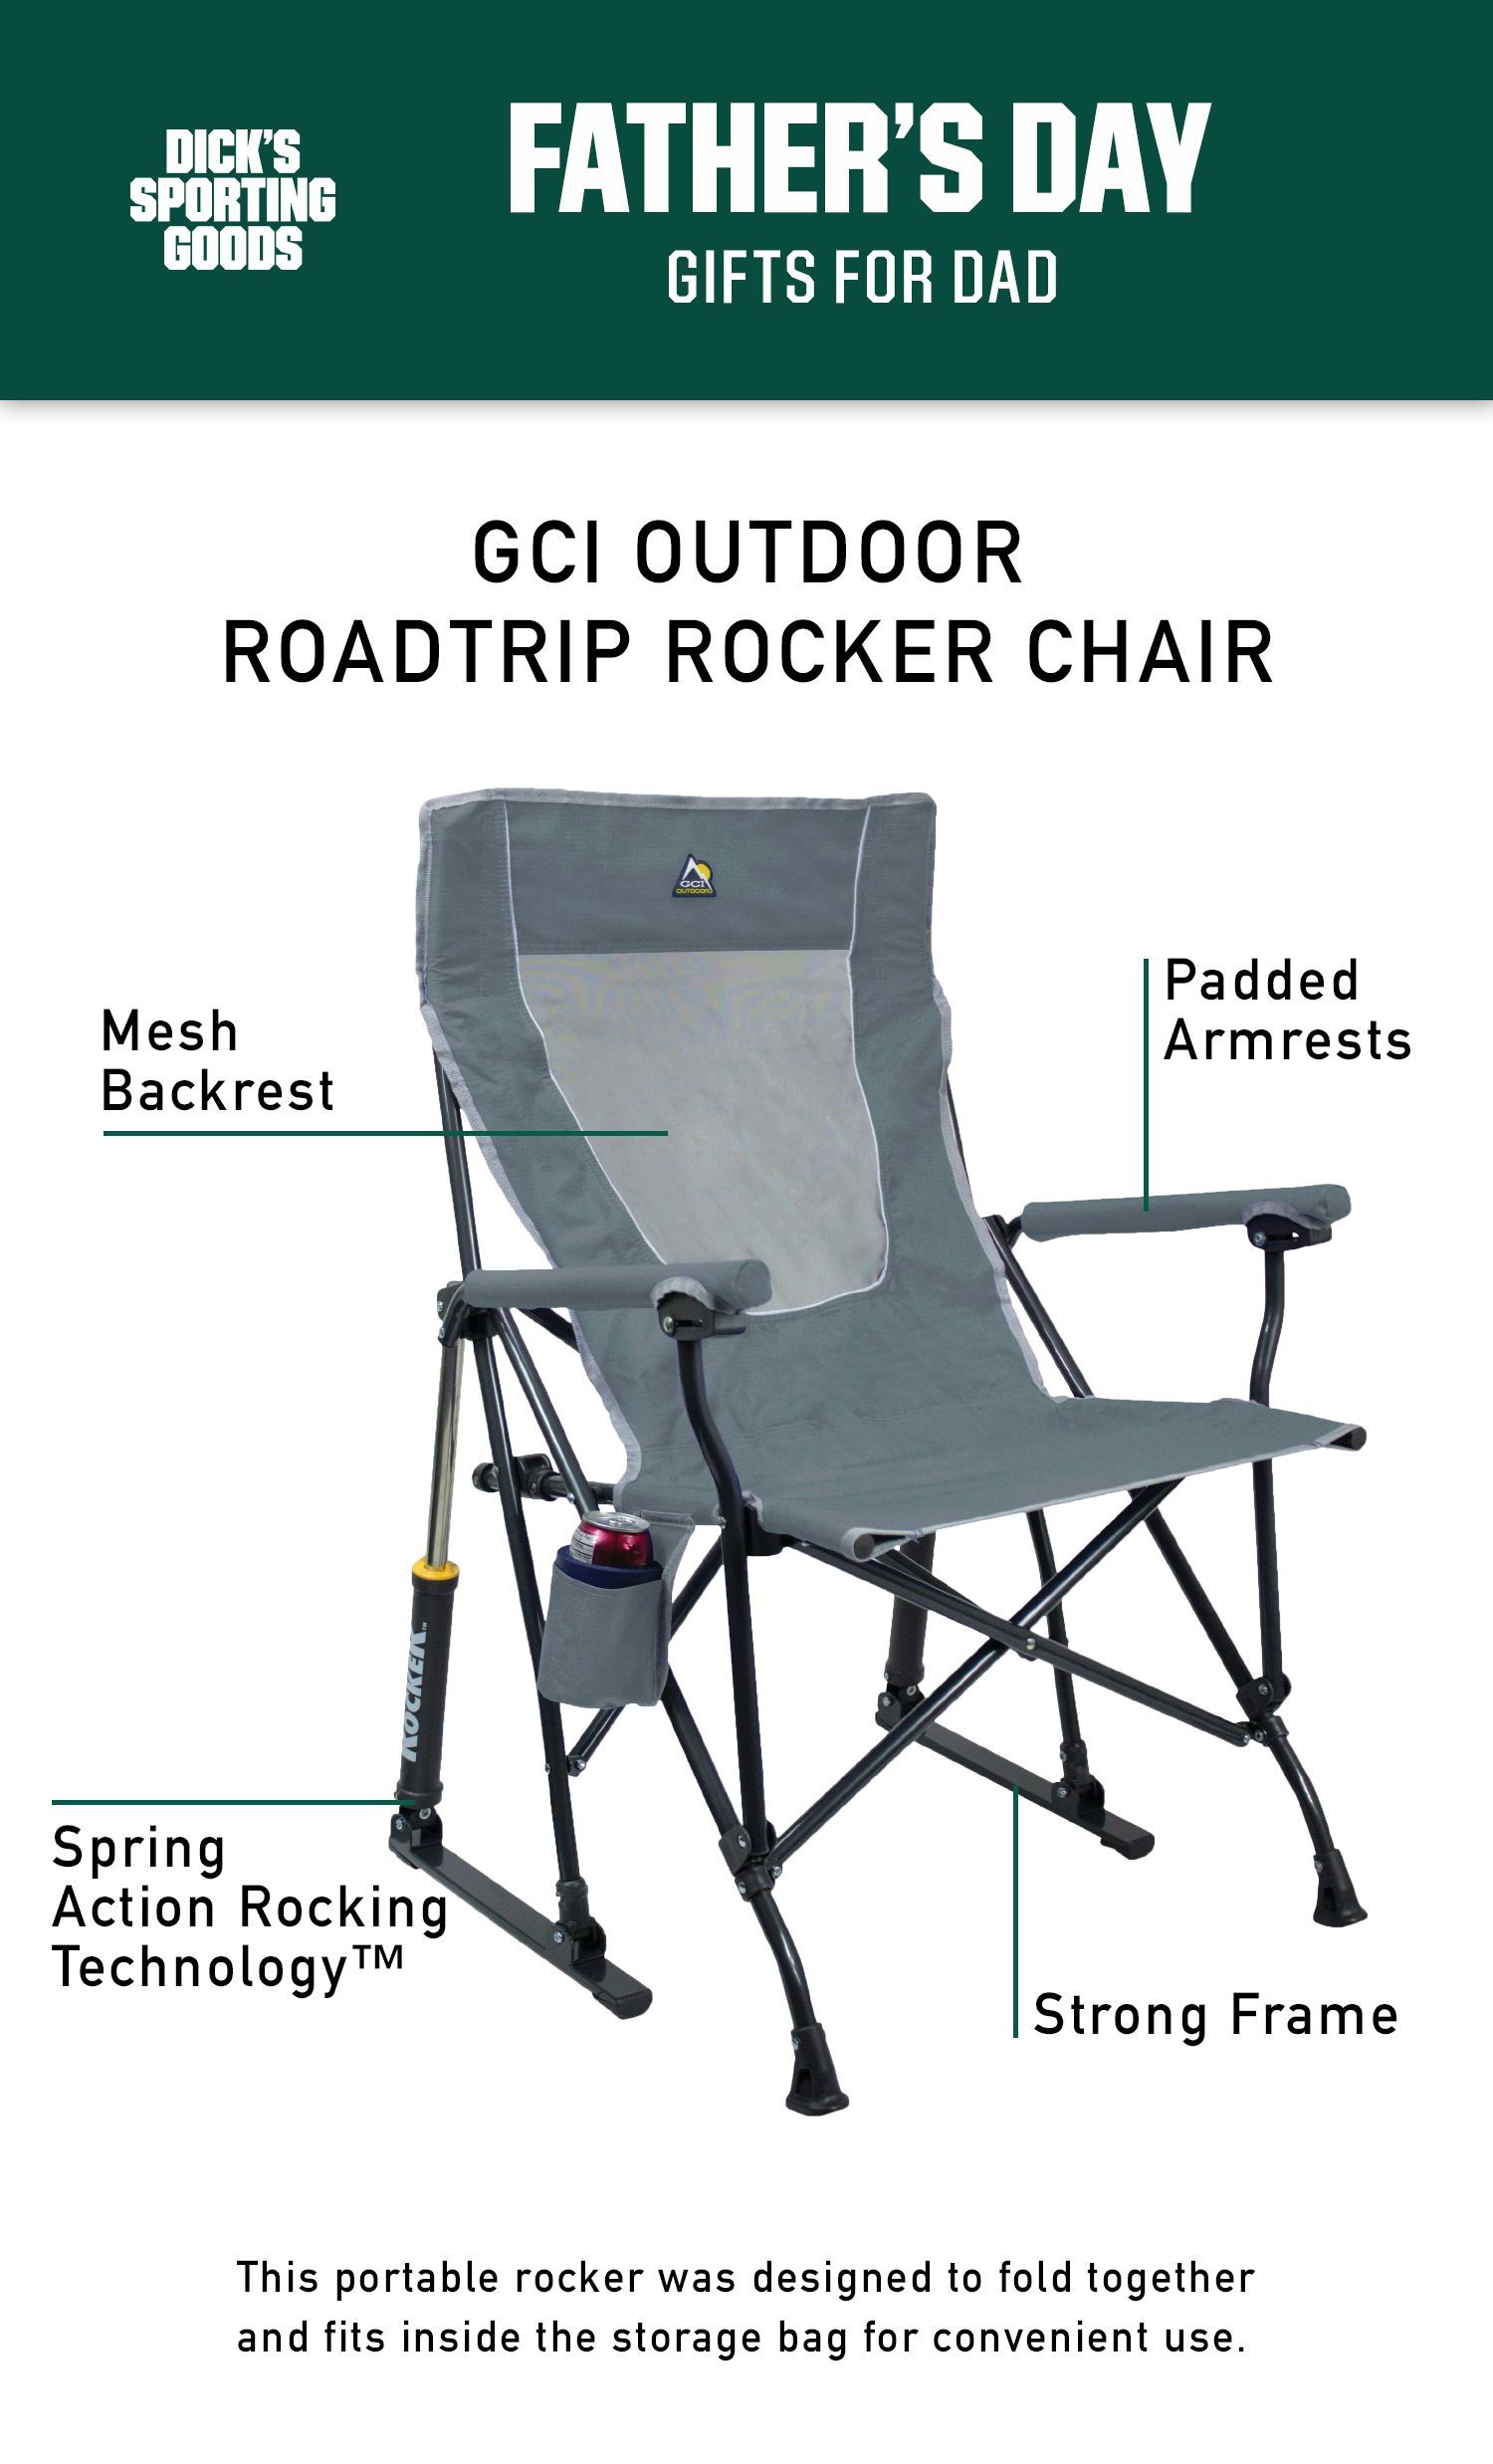 The Gci Outdoor Chair Is A Great Gift For Dad This Year For Father S Day This Gift Can Be Used For Outdoor Activities Lik Outdoor Rocker Chairs Best Dad Gifts